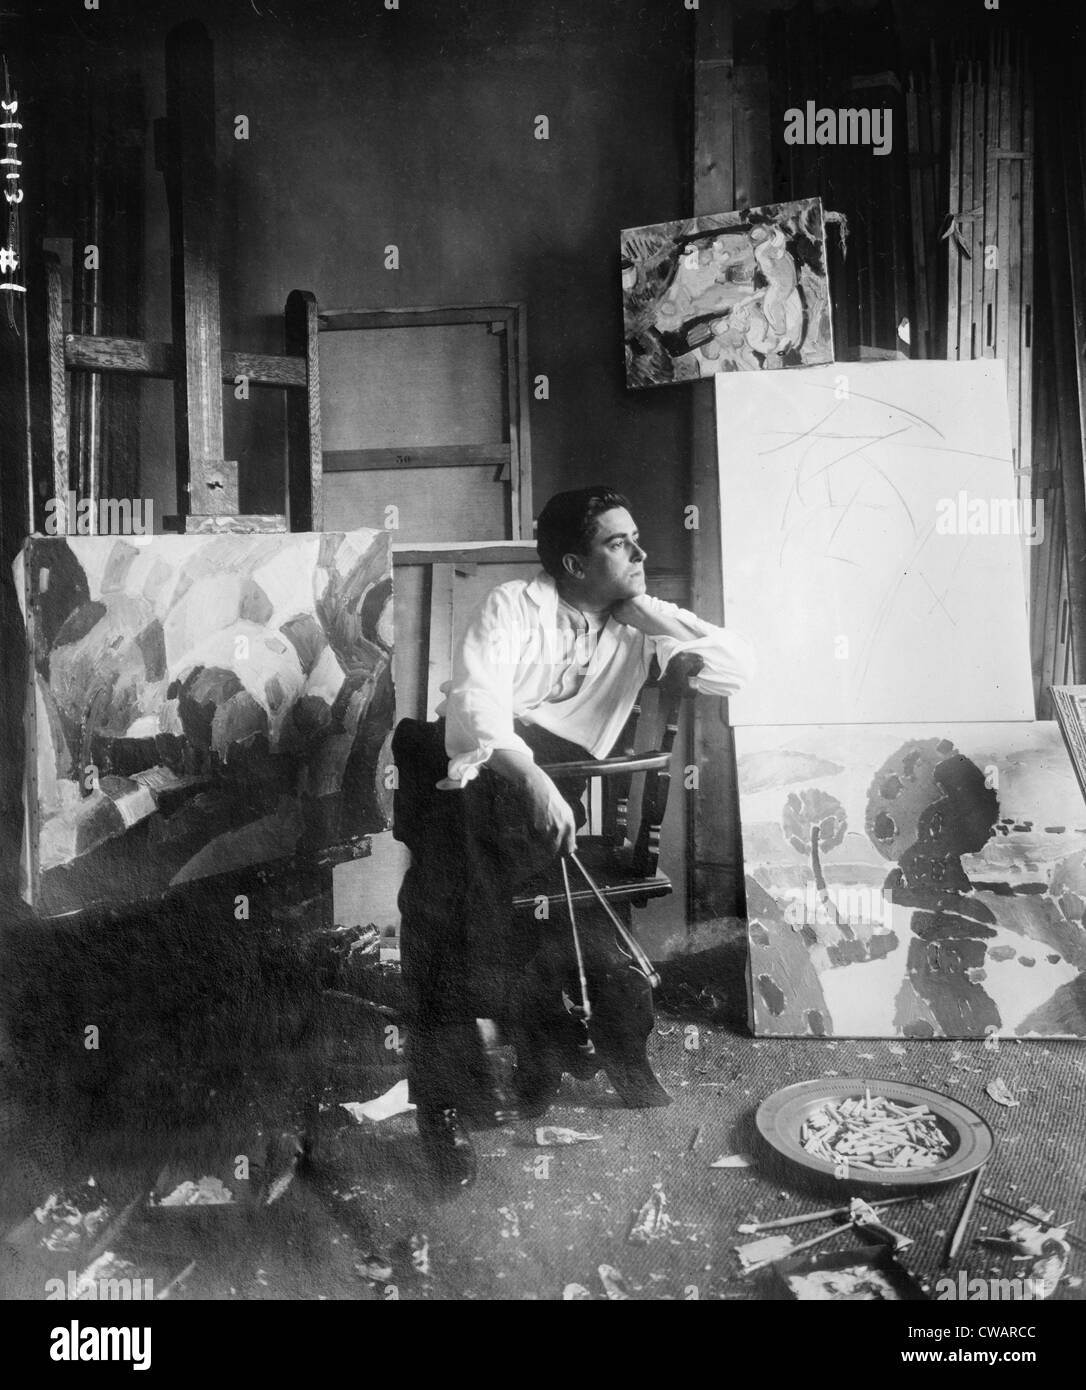 Francis Picabia (1879-1953), French painter associated with the Cubist and Surrealist styles in his studio in New - Stock Image